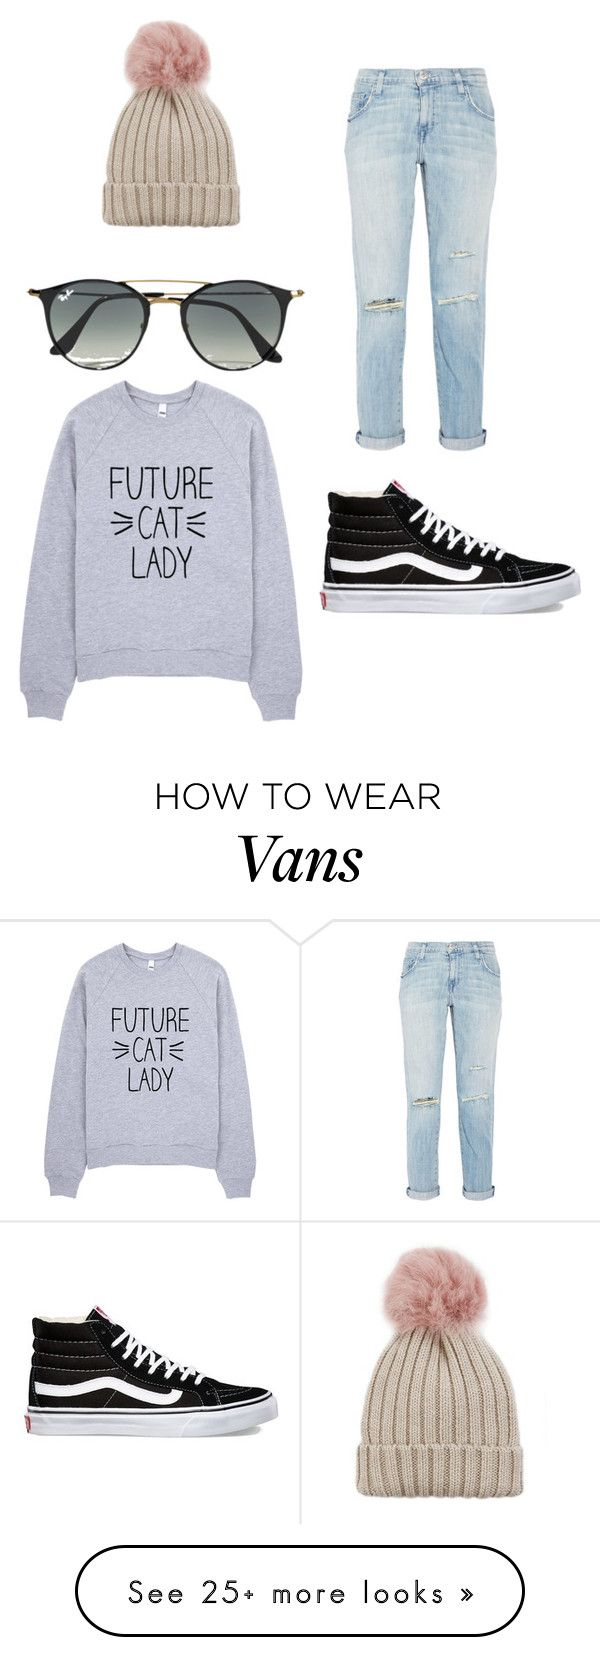 """""""Casual Day❤️"""" by kennedydrew2016 on Polyvore featuring Current/Elliott, Ray-Ban, Vans and Jocelyn"""